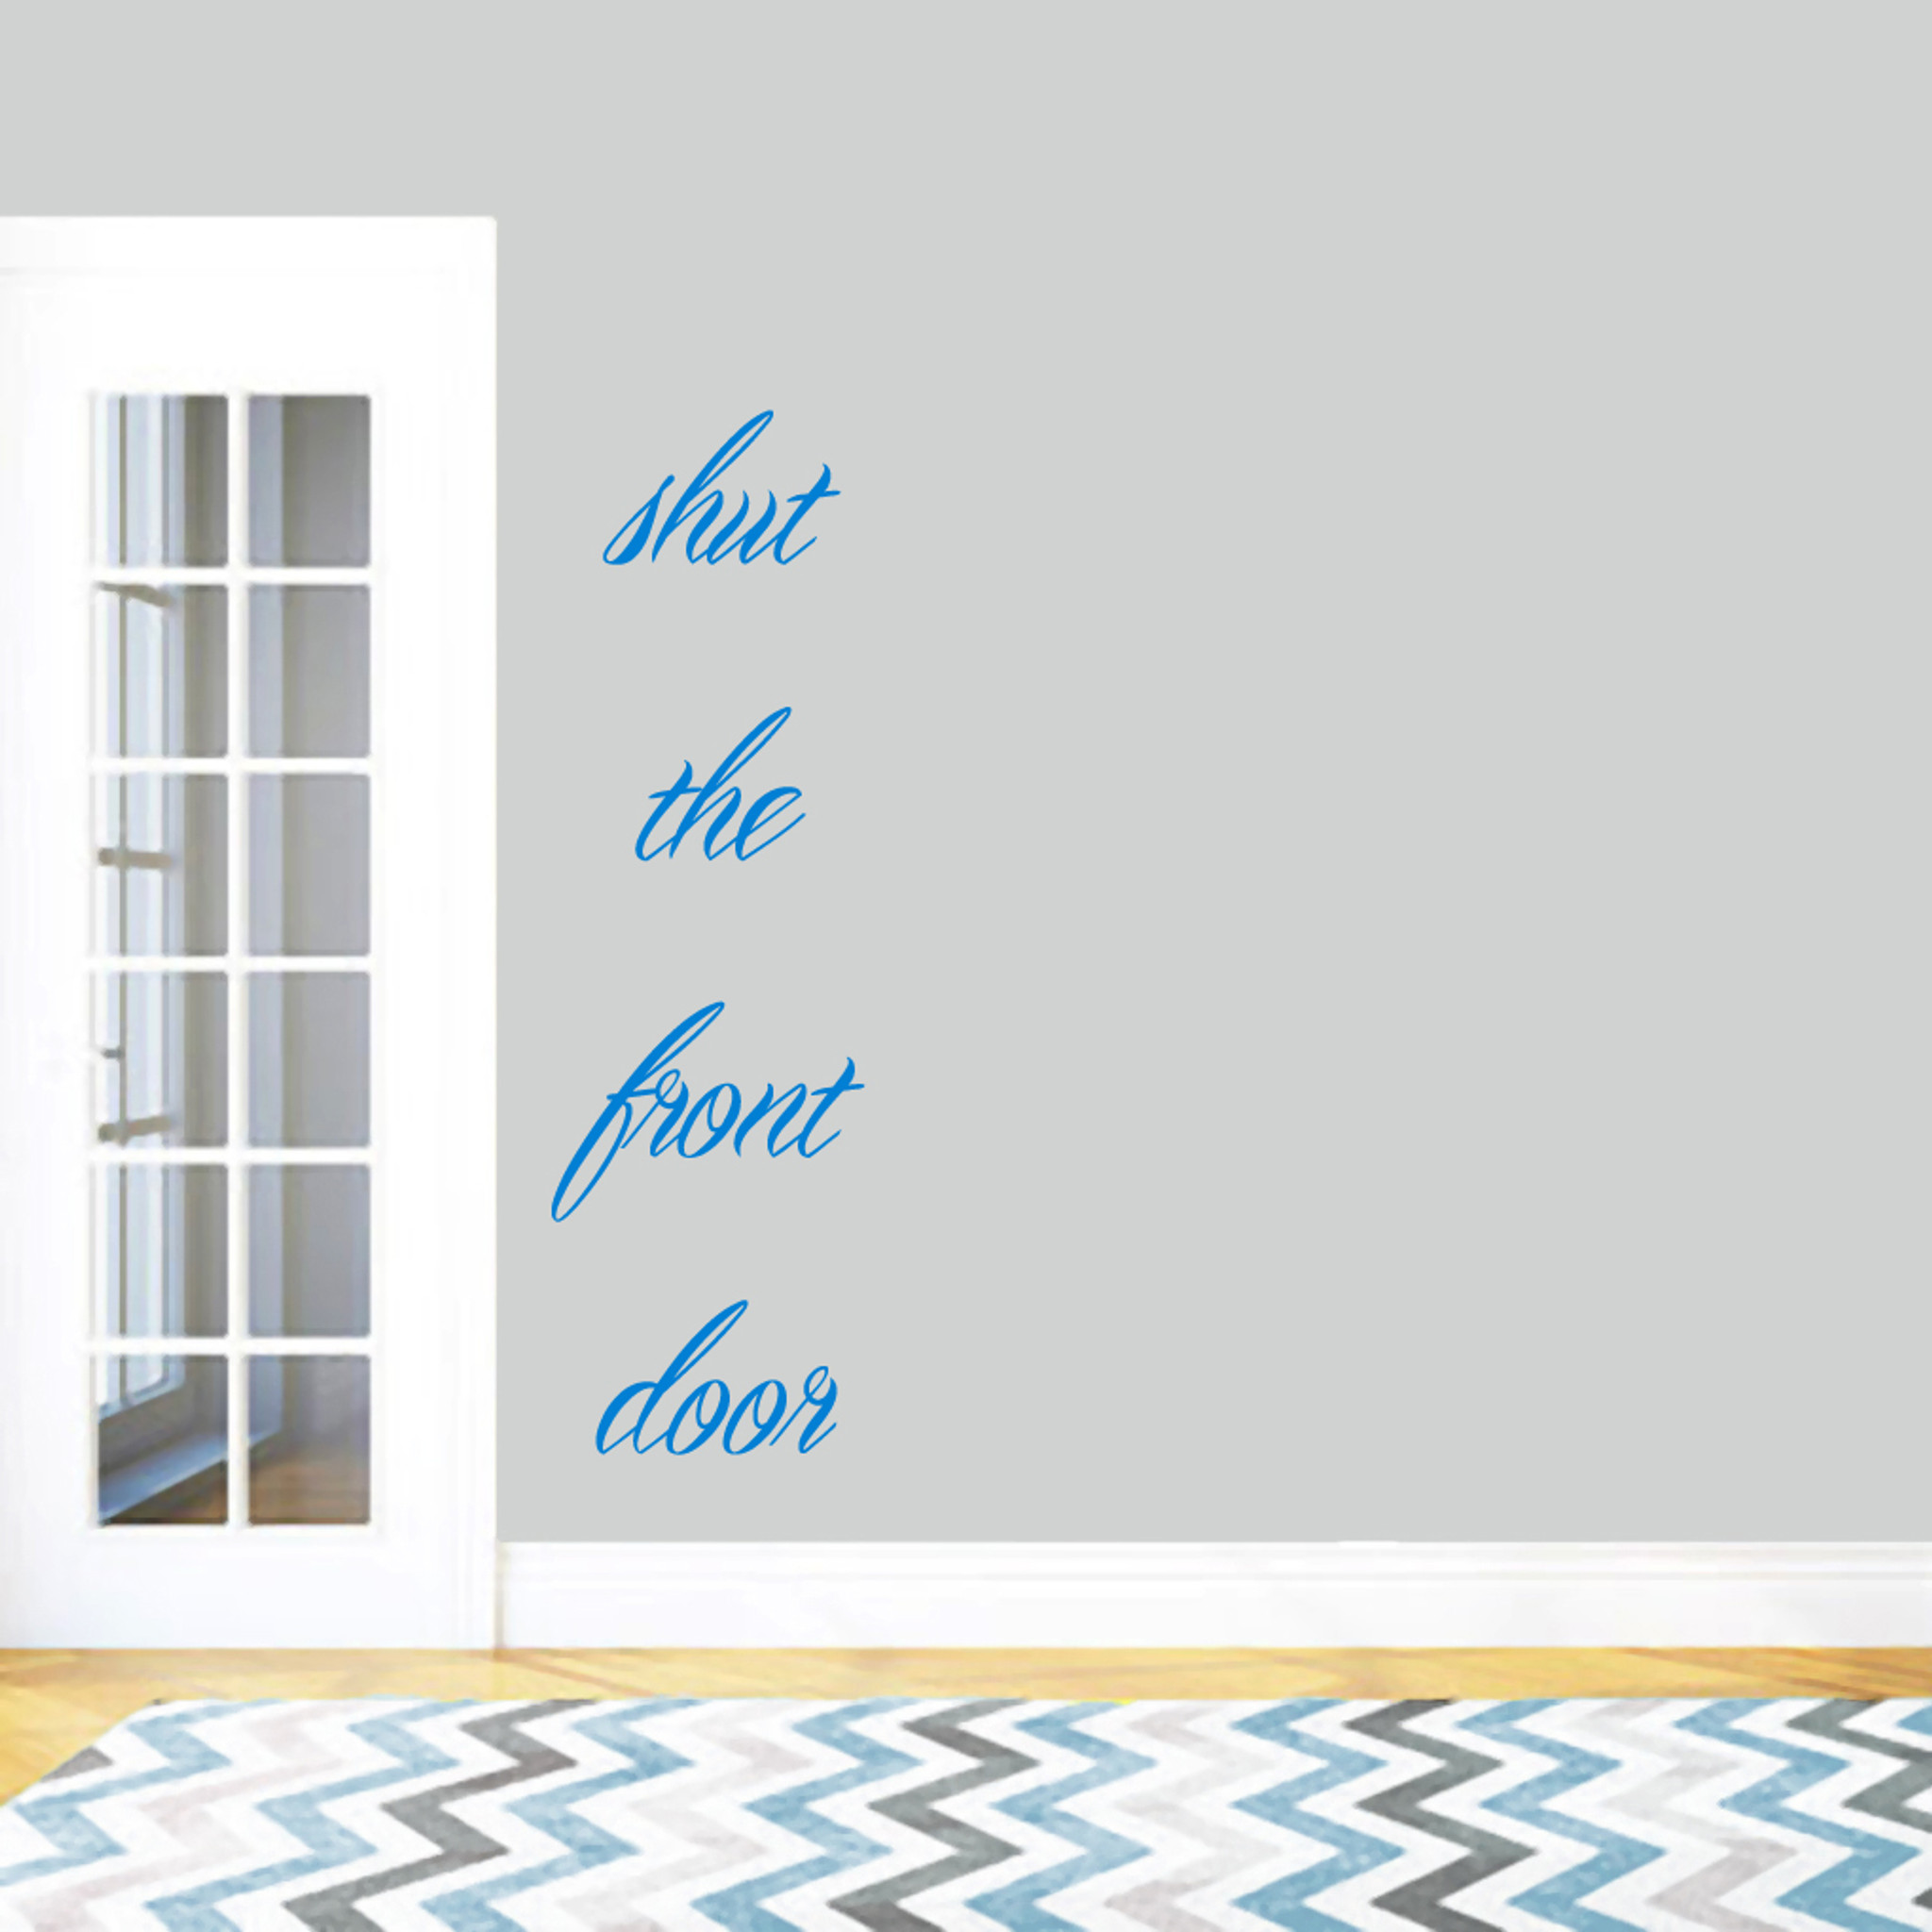 Meaning Of Shut The Front Door: Shut The Front Door Wall Decals Home Décor Wall Decals